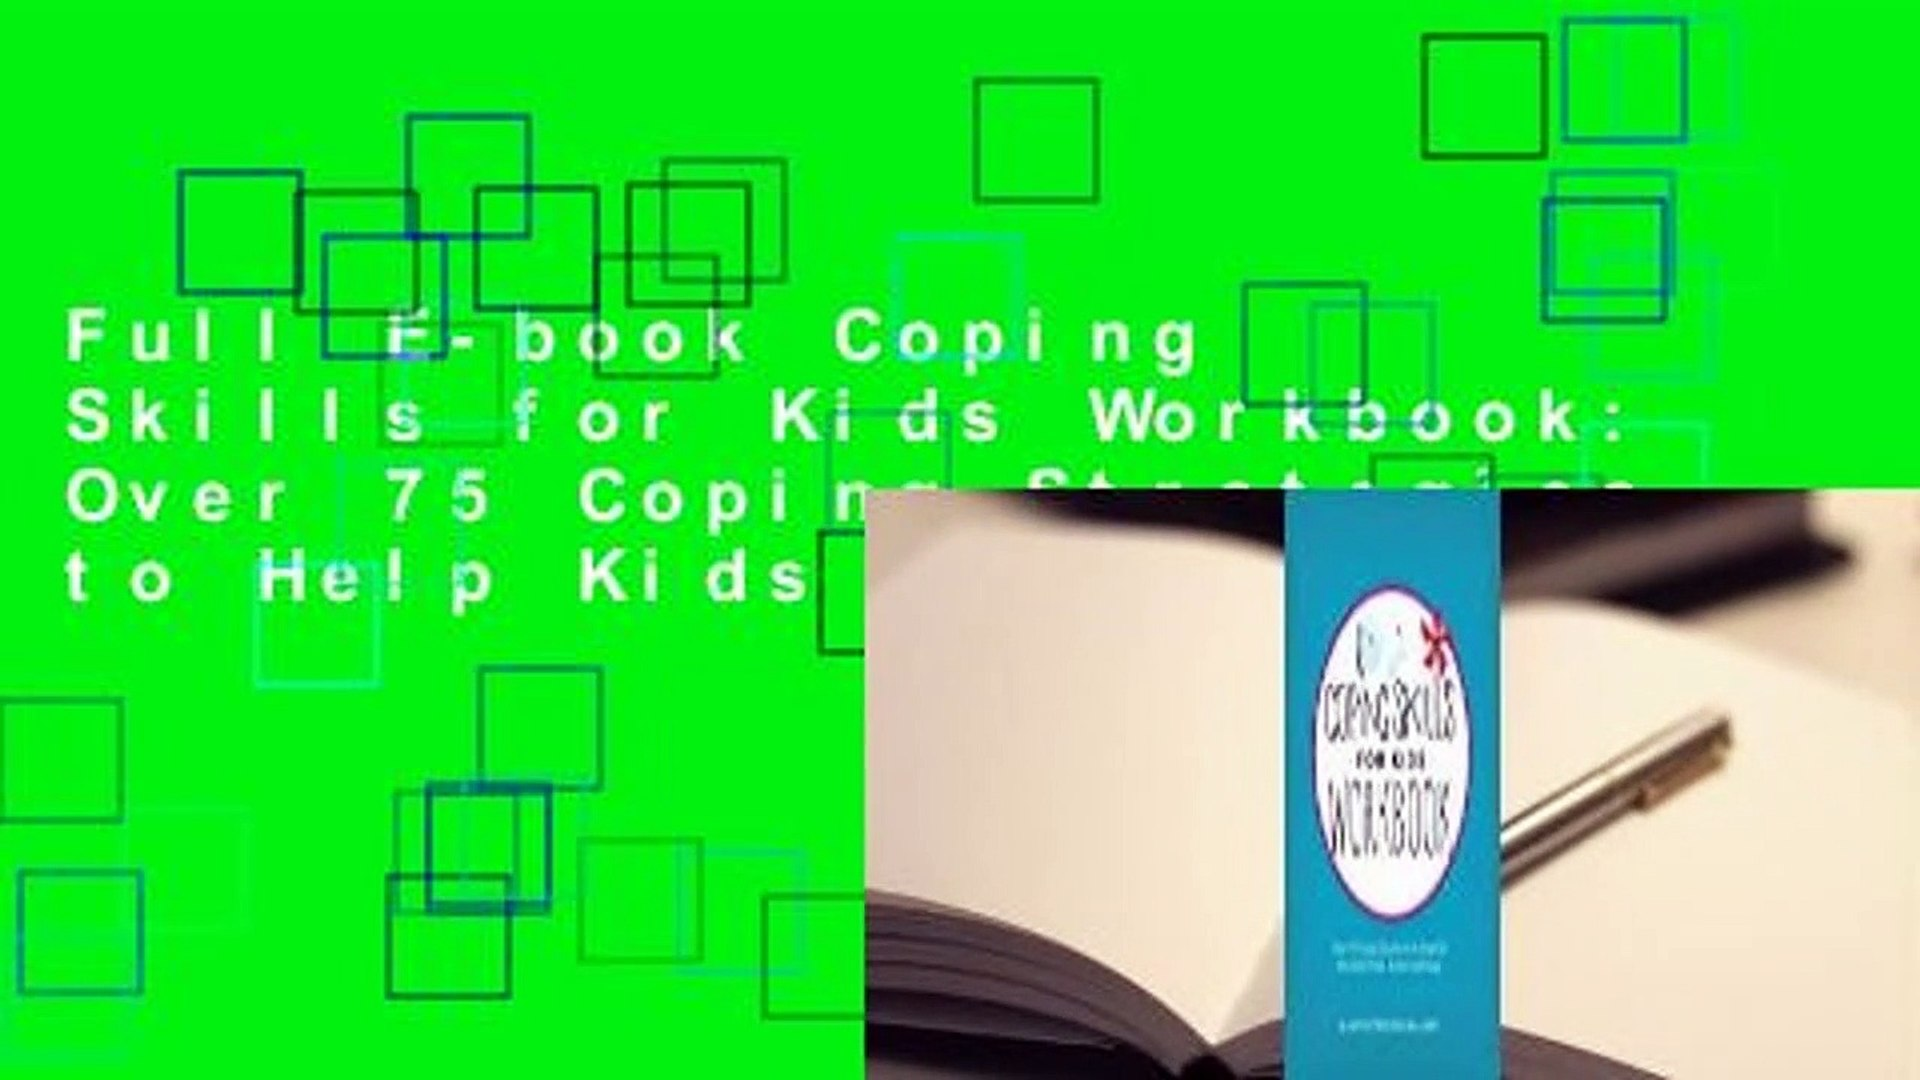 Full E-book Coping Skills for Kids Workbook: Over 75 Coping